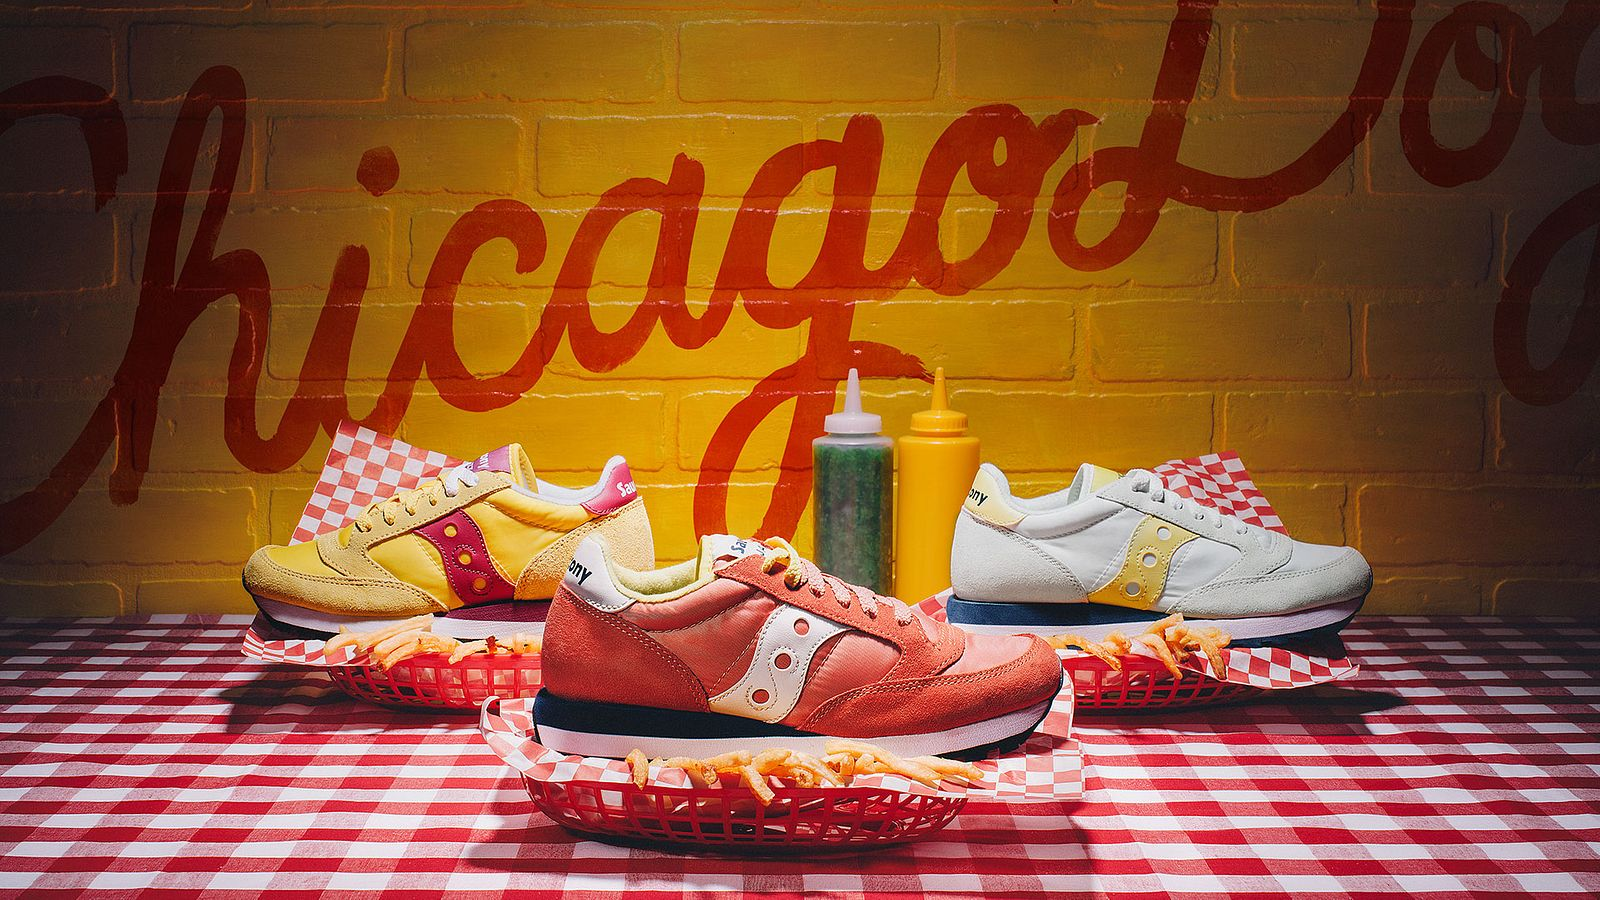 Chicago Dog shoe spread for Saucony Originals, styled by Someoddpilot